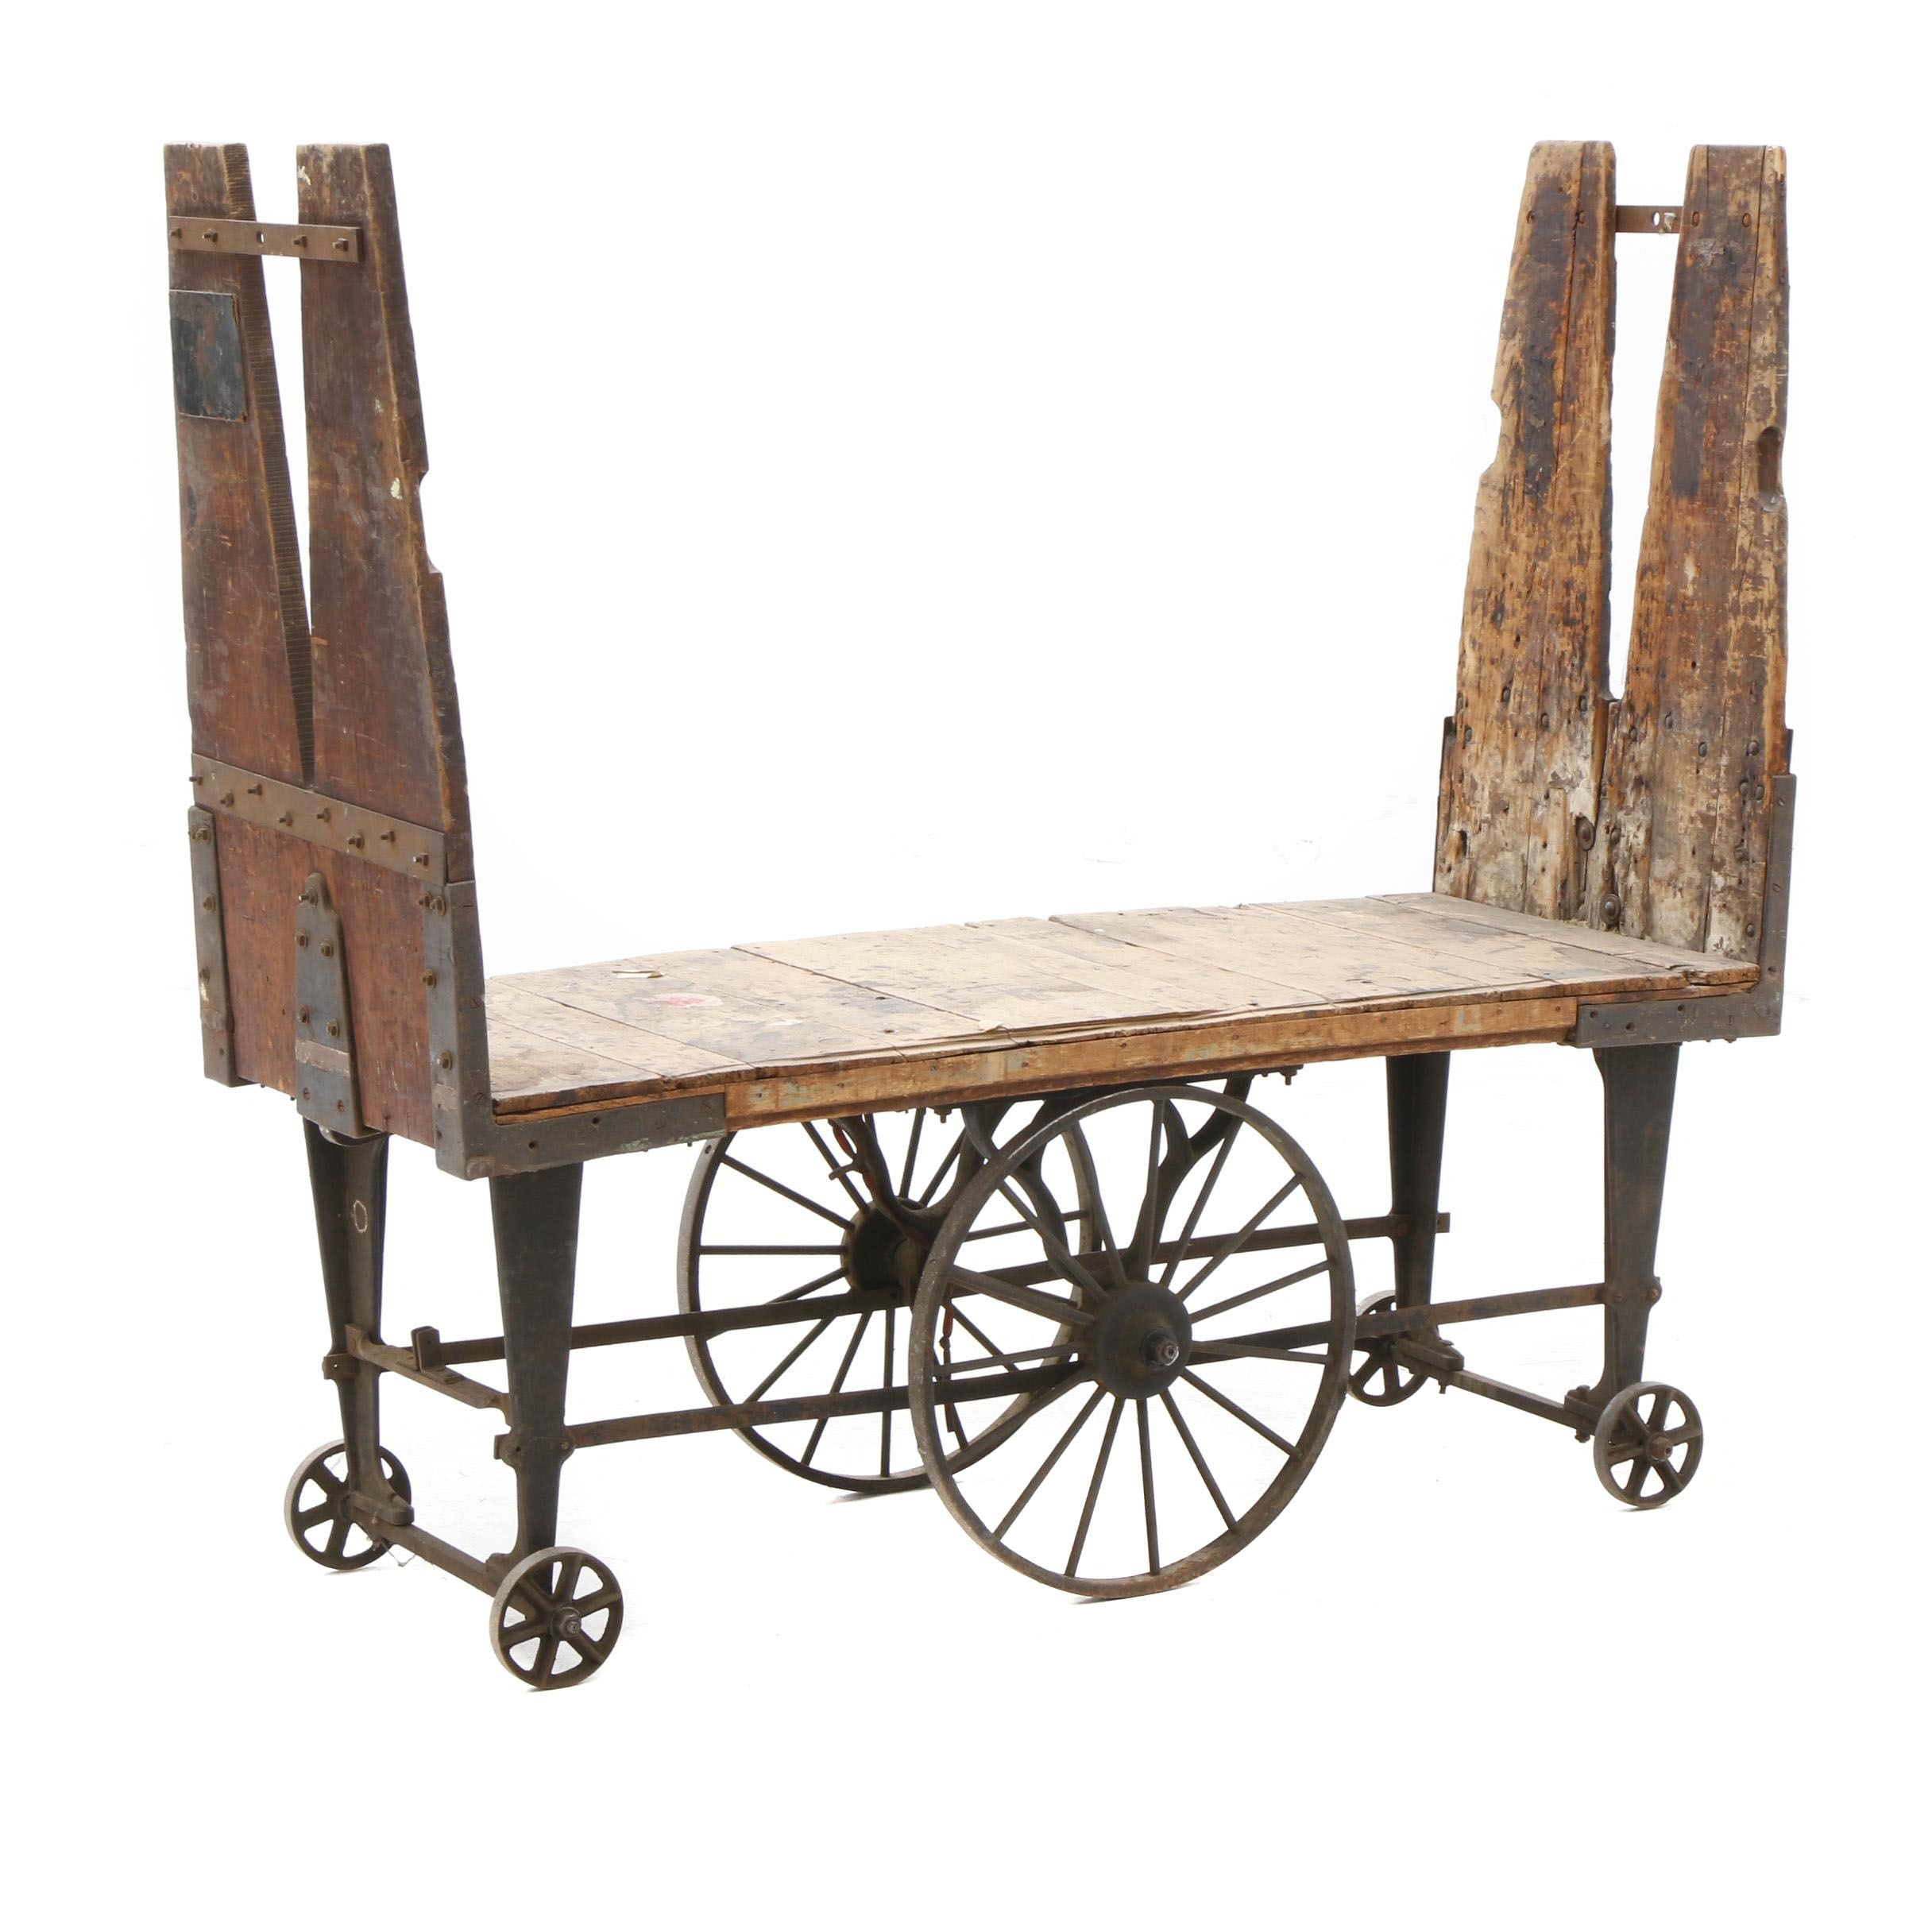 Pine Industrial Rolling Cart, Early 1900s